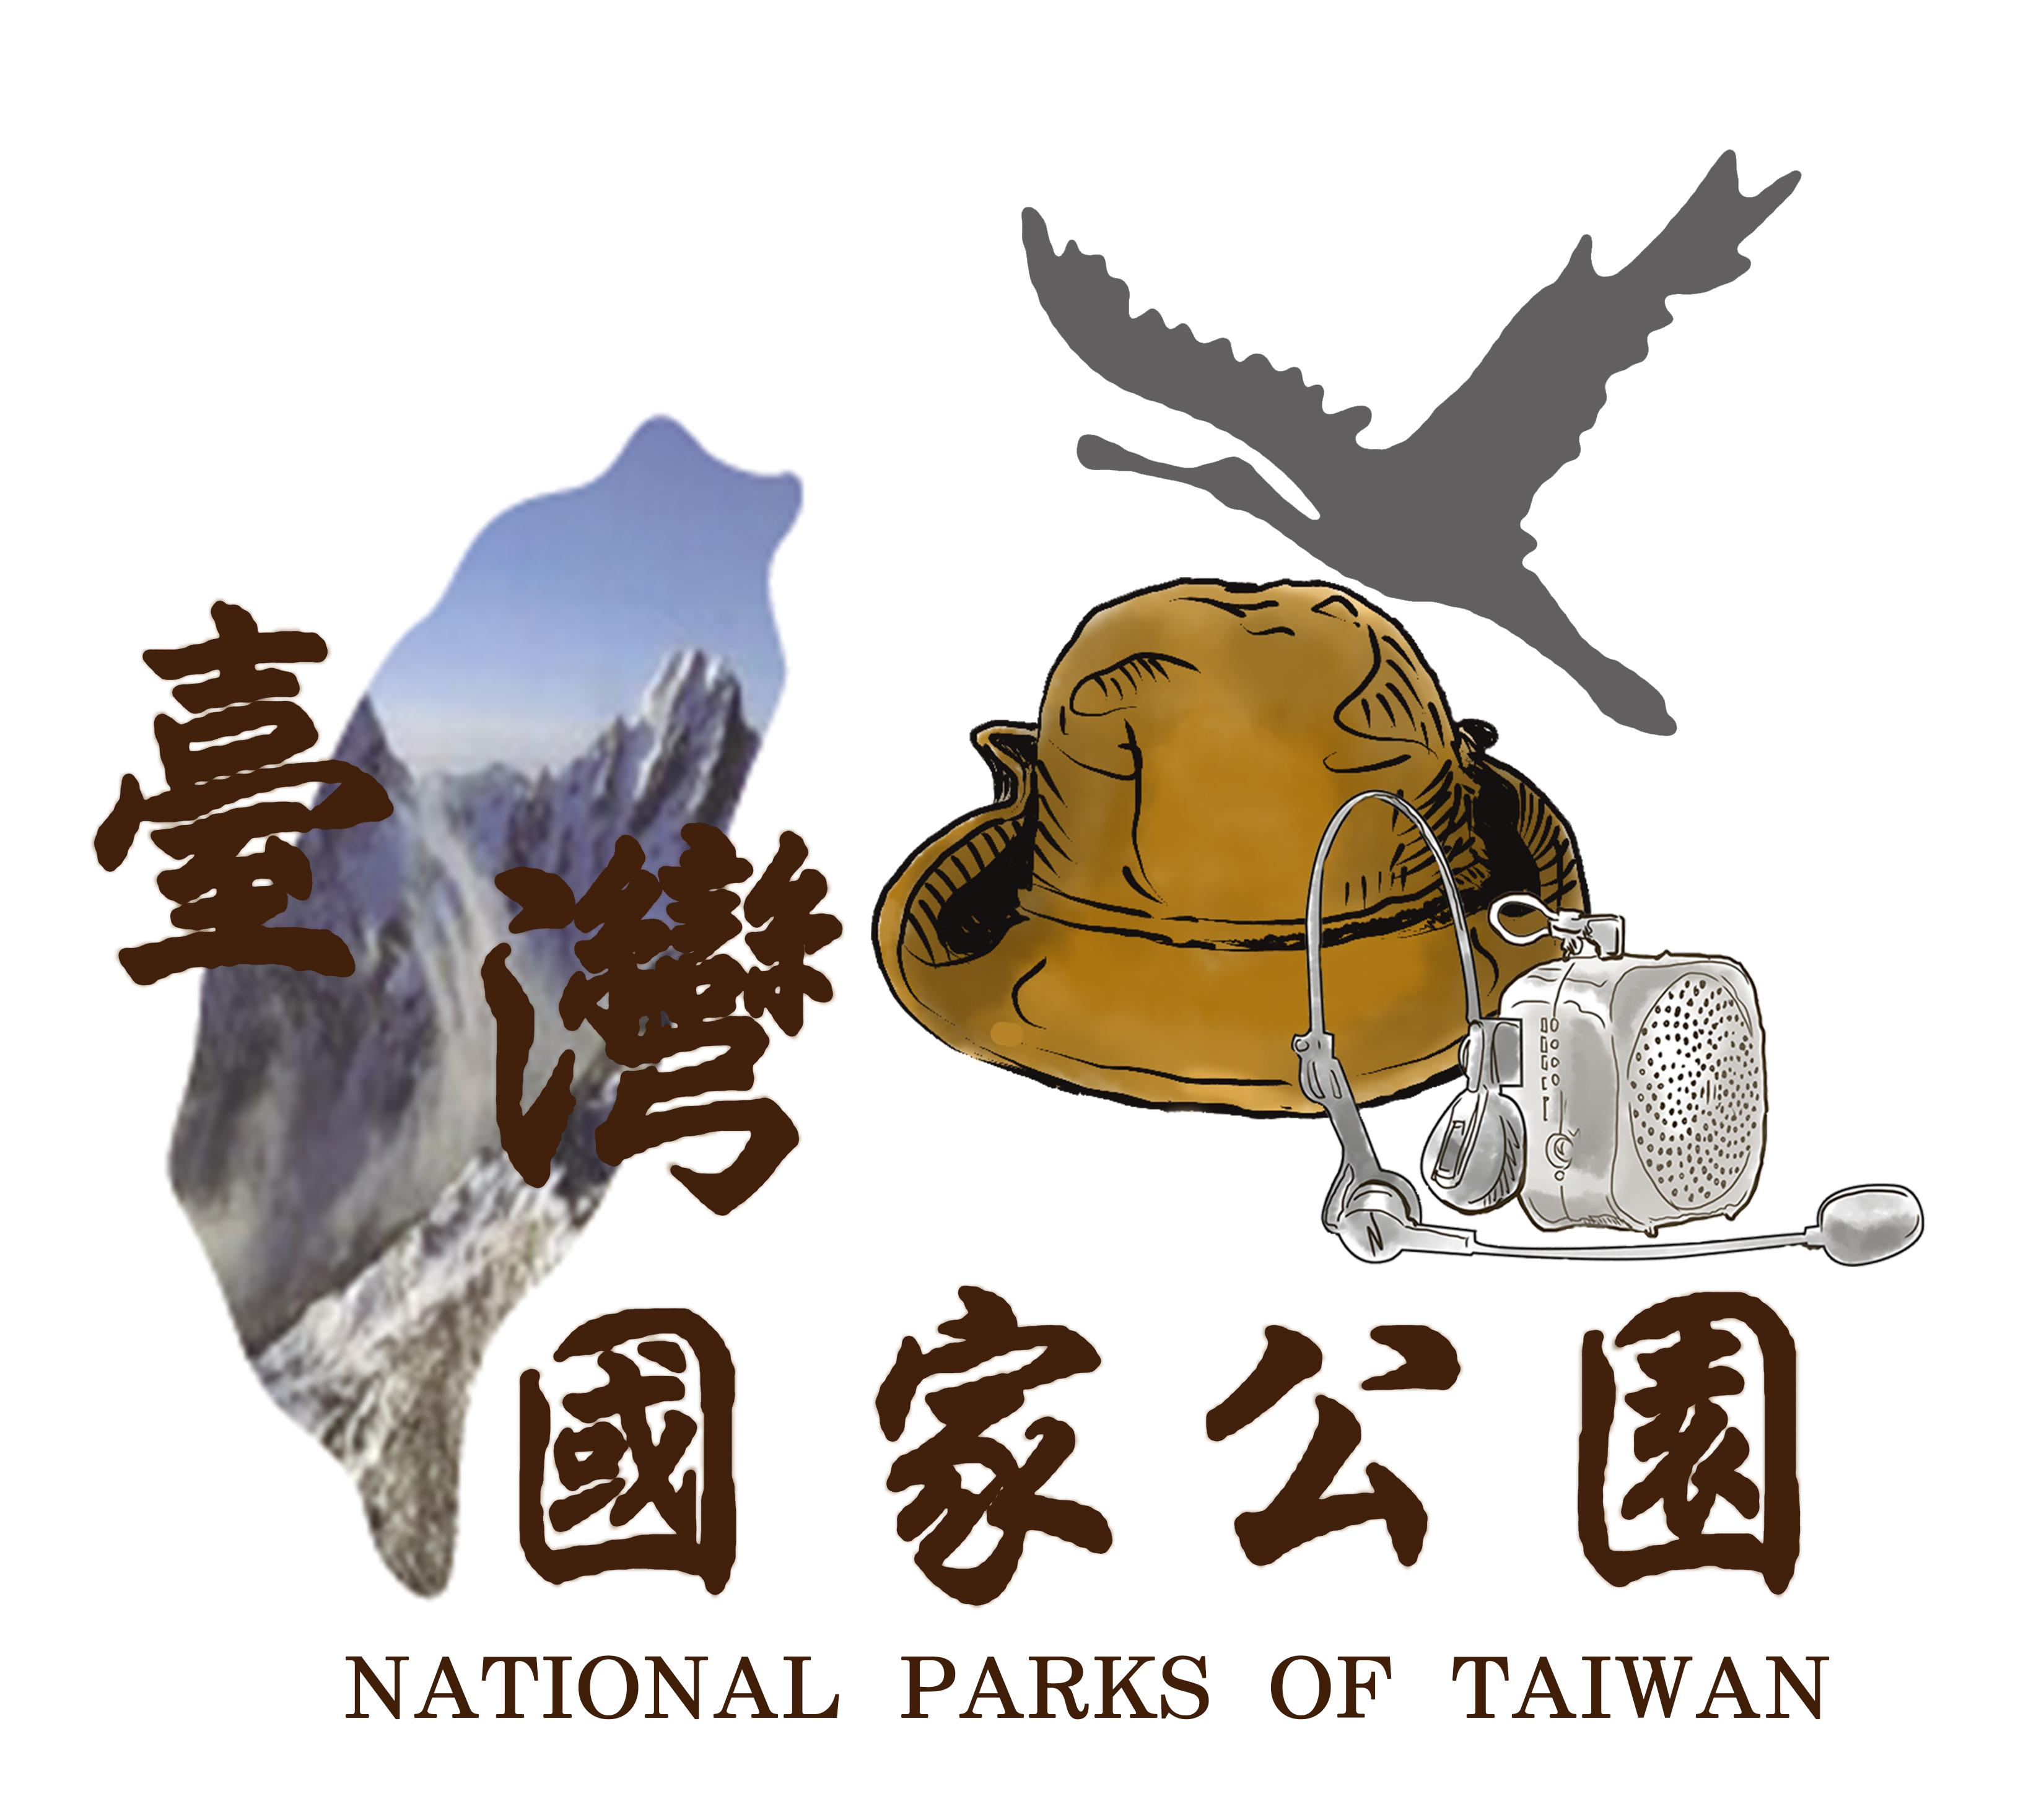 taiwanese tale of two cities wiki